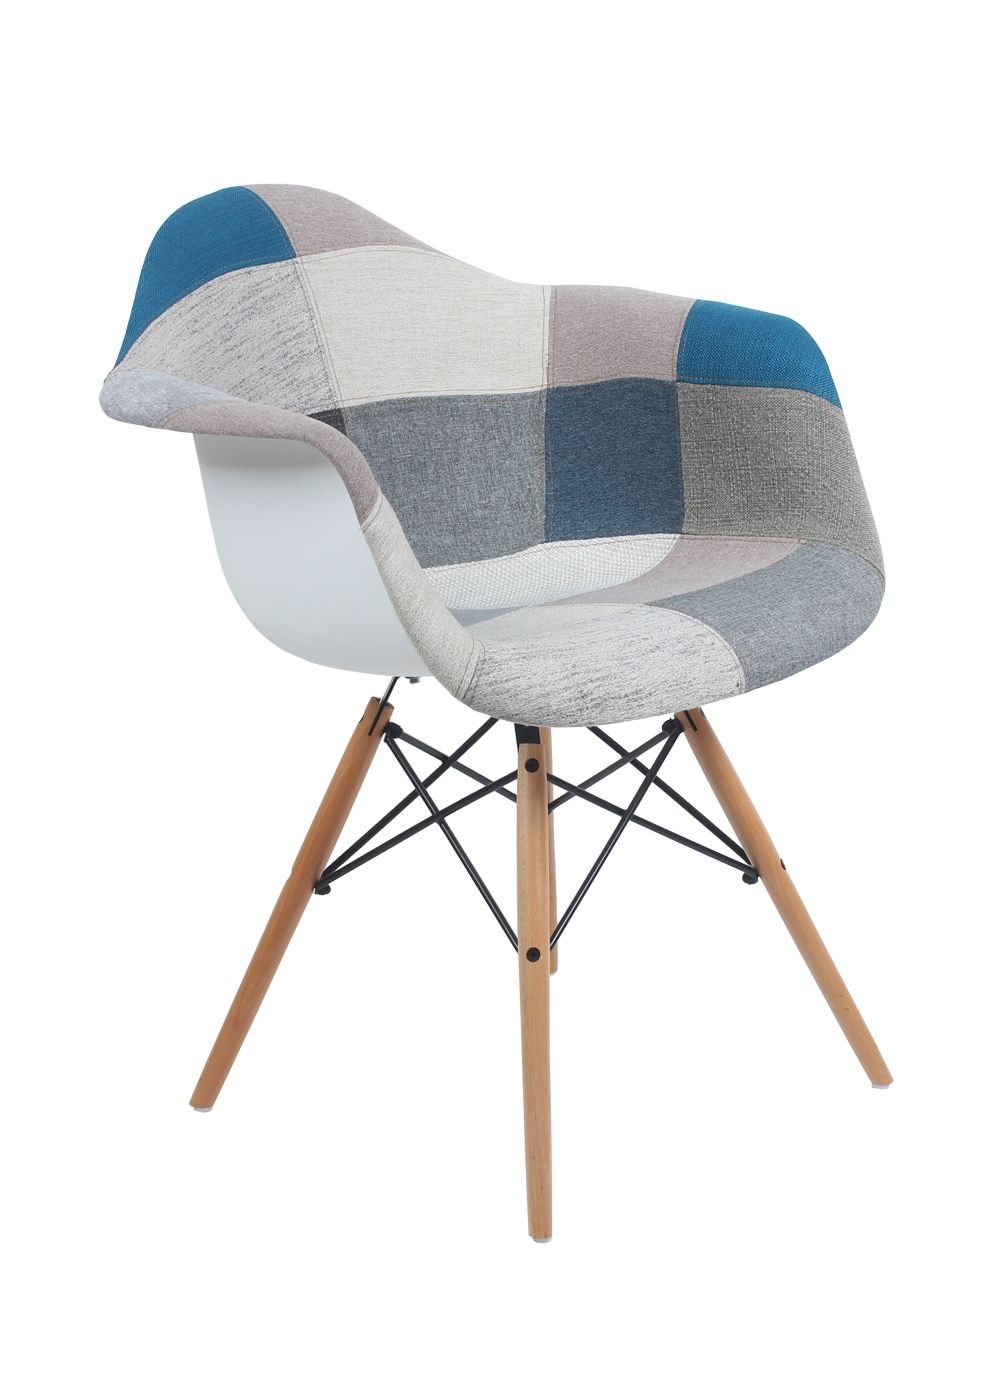 Chaise daw patchwork 2015 deco pinterest eames for Chaise charles eames patchwork